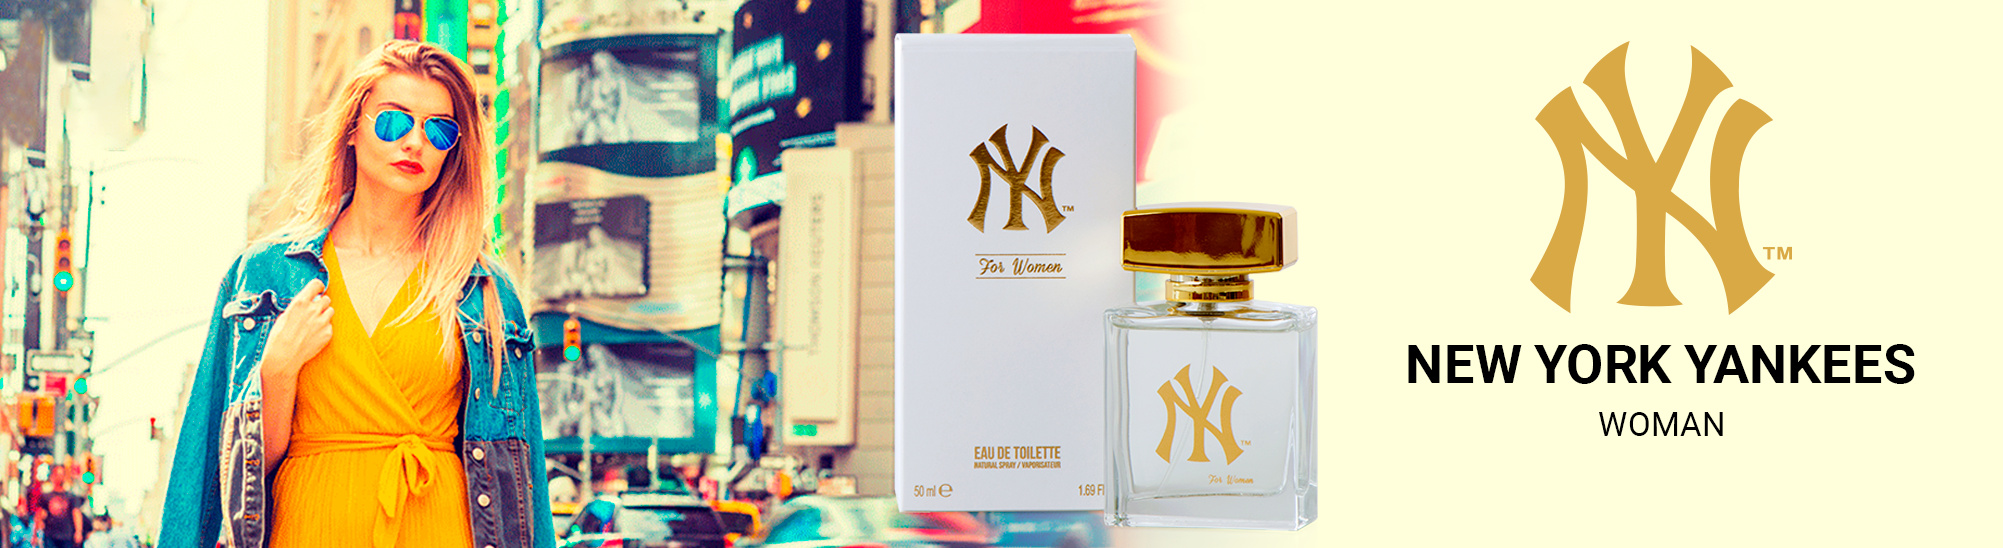 [New York Yankees For Woman]